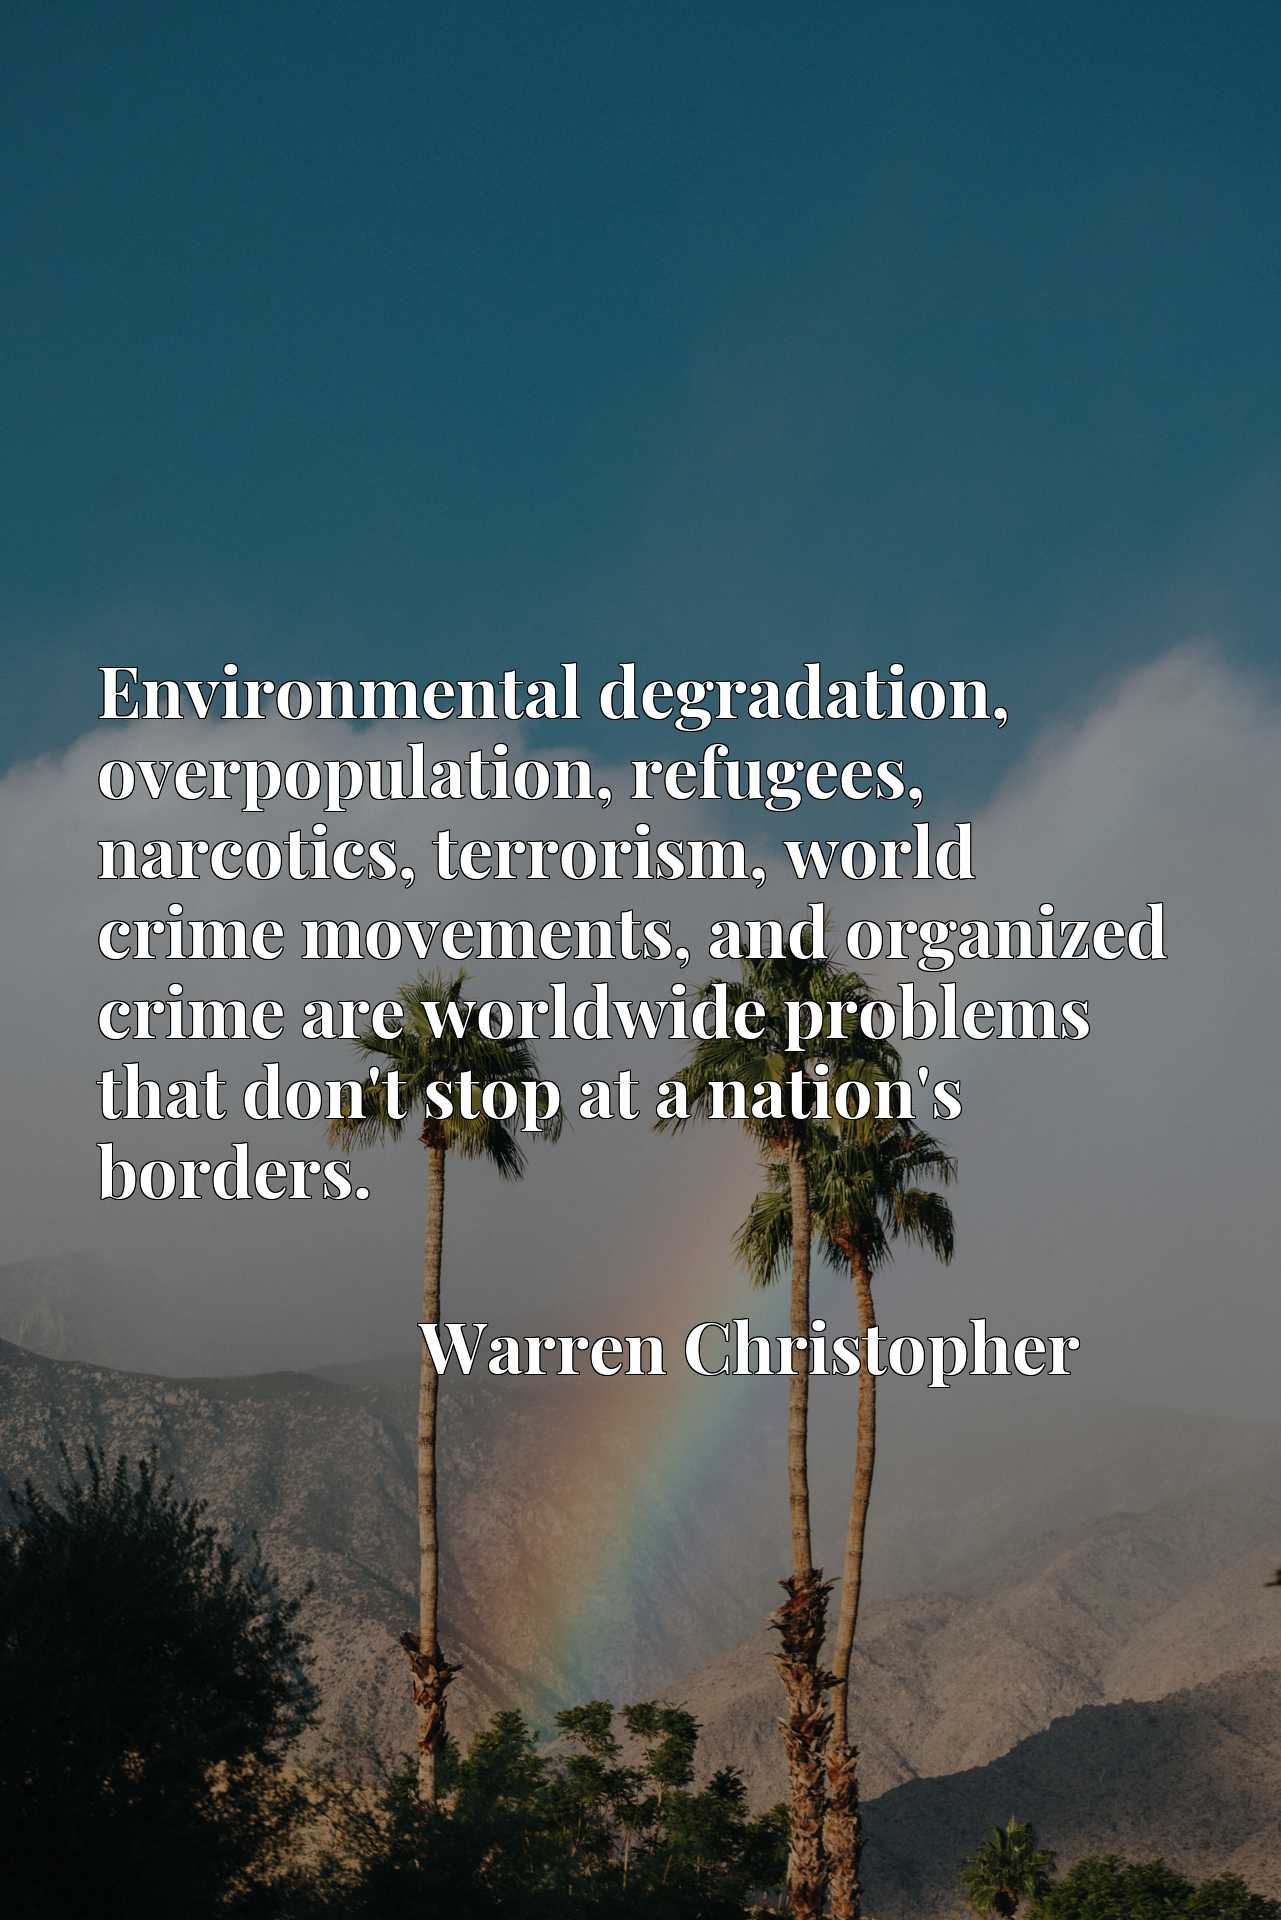 Environmental degradation, overpopulation, refugees, narcotics, terrorism, world crime movements, and organized crime are worldwide problems that don't stop at a nation's borders.